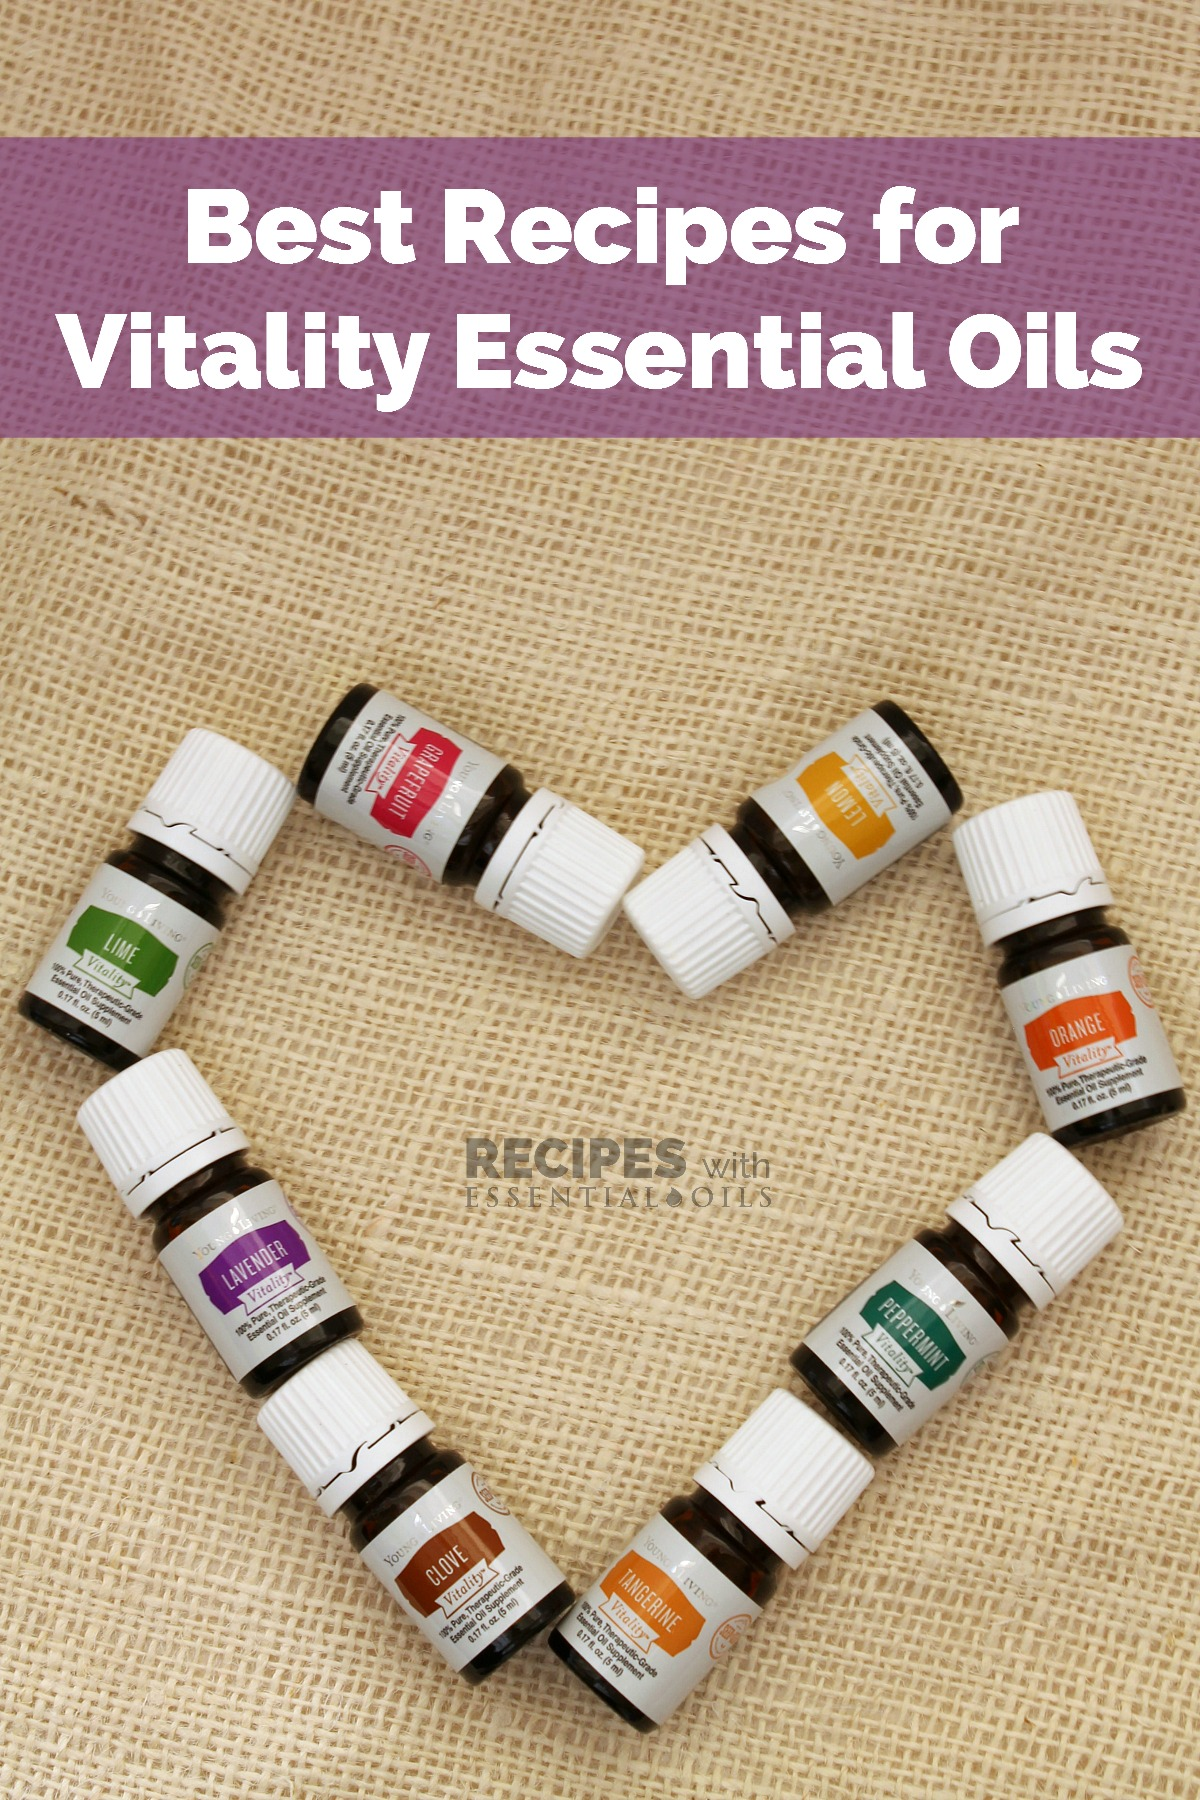 Best Recipes using Young Living's Vitality Essential Oils from RecipeswithEssentialOils.com